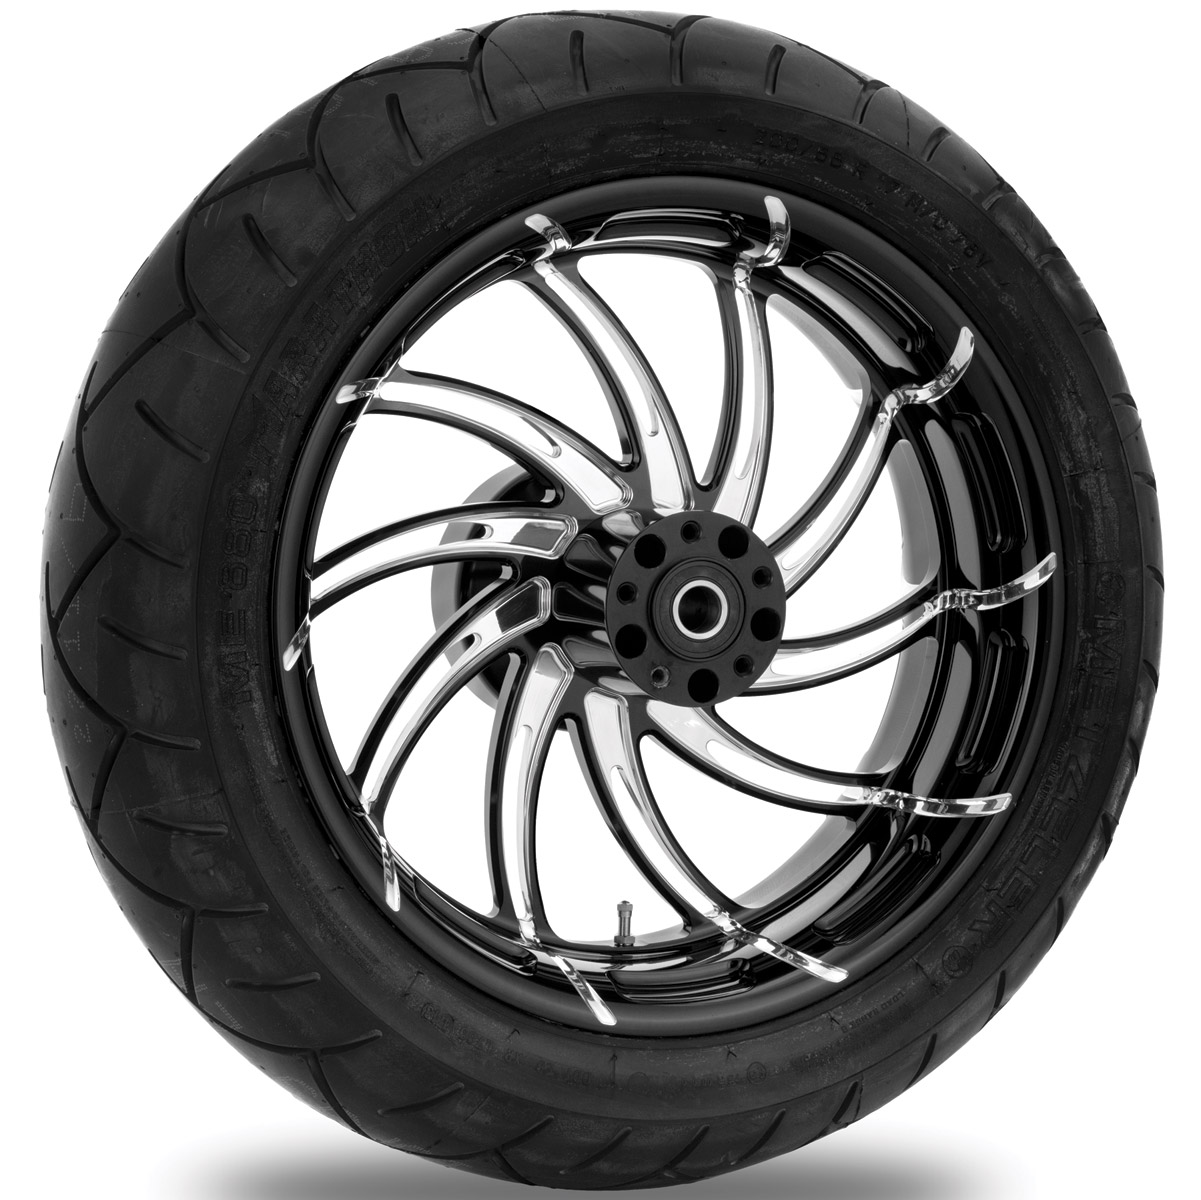 Performance Machine Supra Contrast Cut Platinum Rear Wheel Package, 17″ x 6″ with ABS